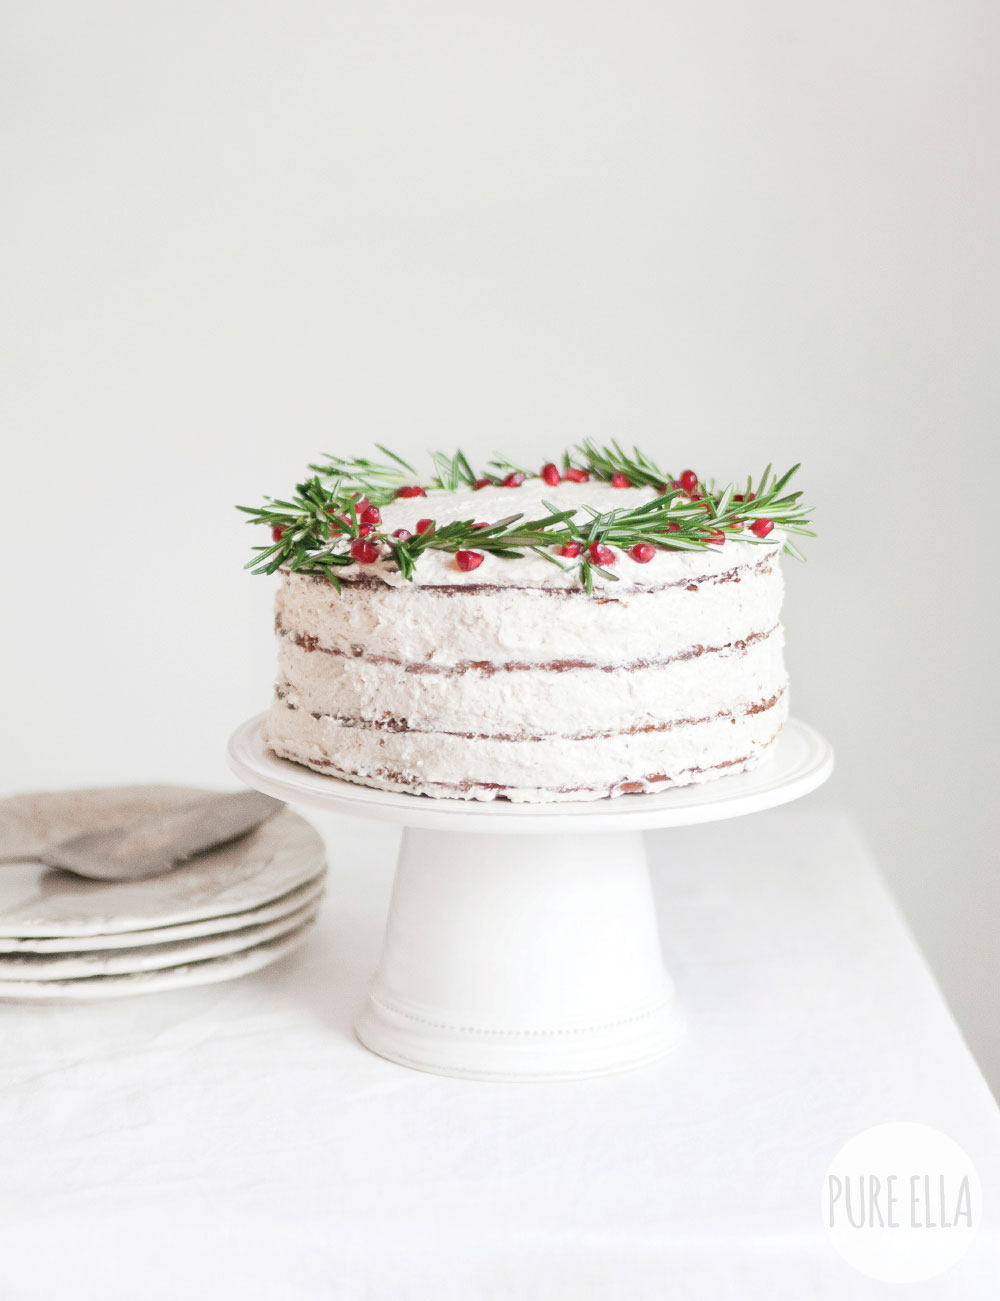 Gluten-free-Vegan-Gingerbread-Christmas-Wreath-Cake-Recipe